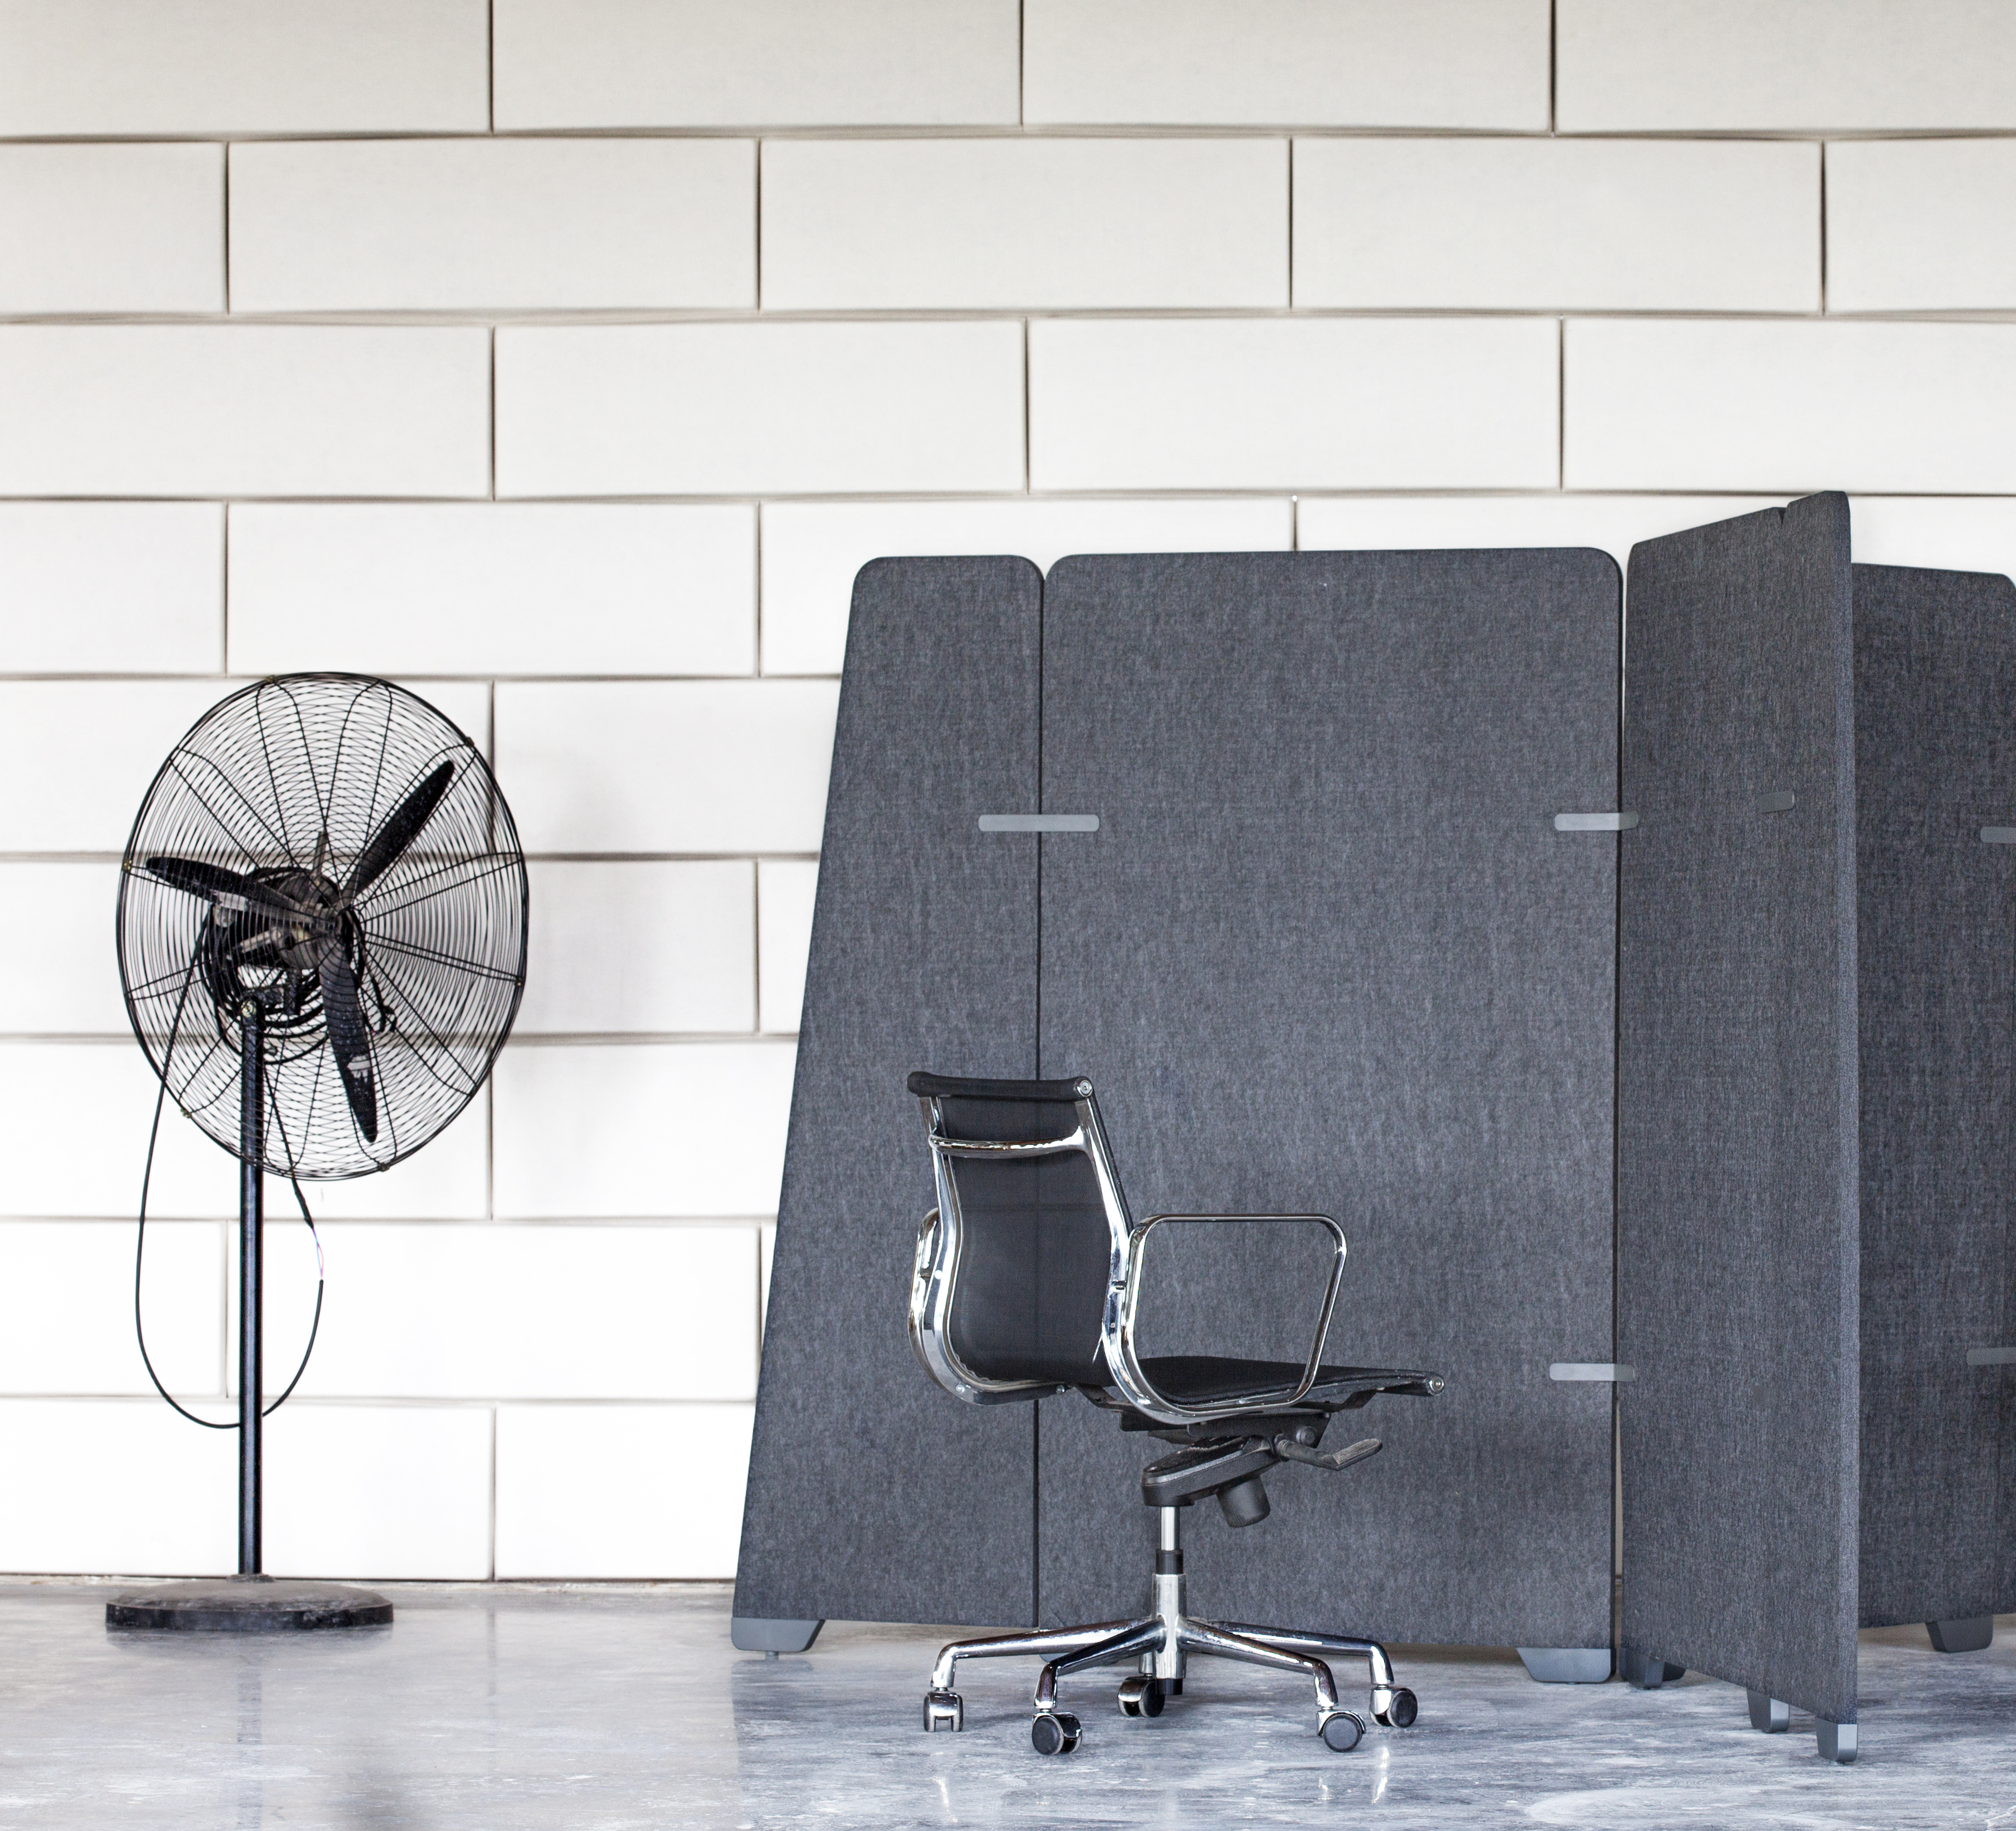 EP Partition Wrap 542 Office dividers Woven Image 1